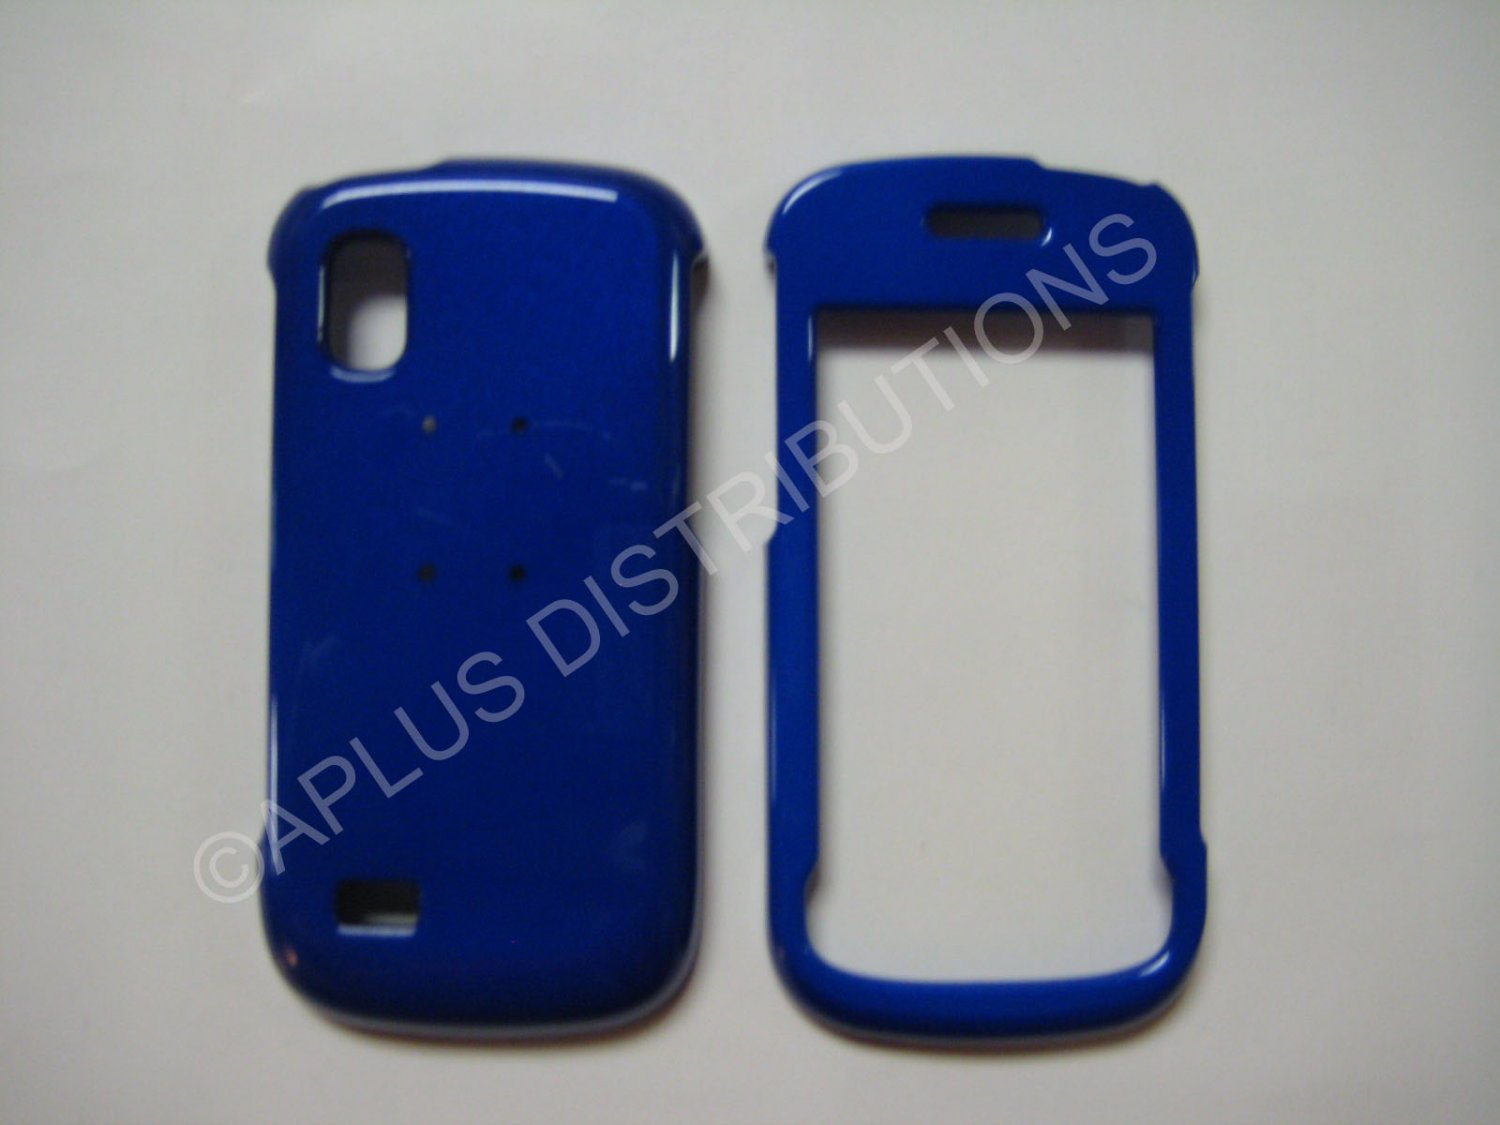 New Blue Solid Color Hard Protective Cover For Samsung Solstice A887 - (0067)